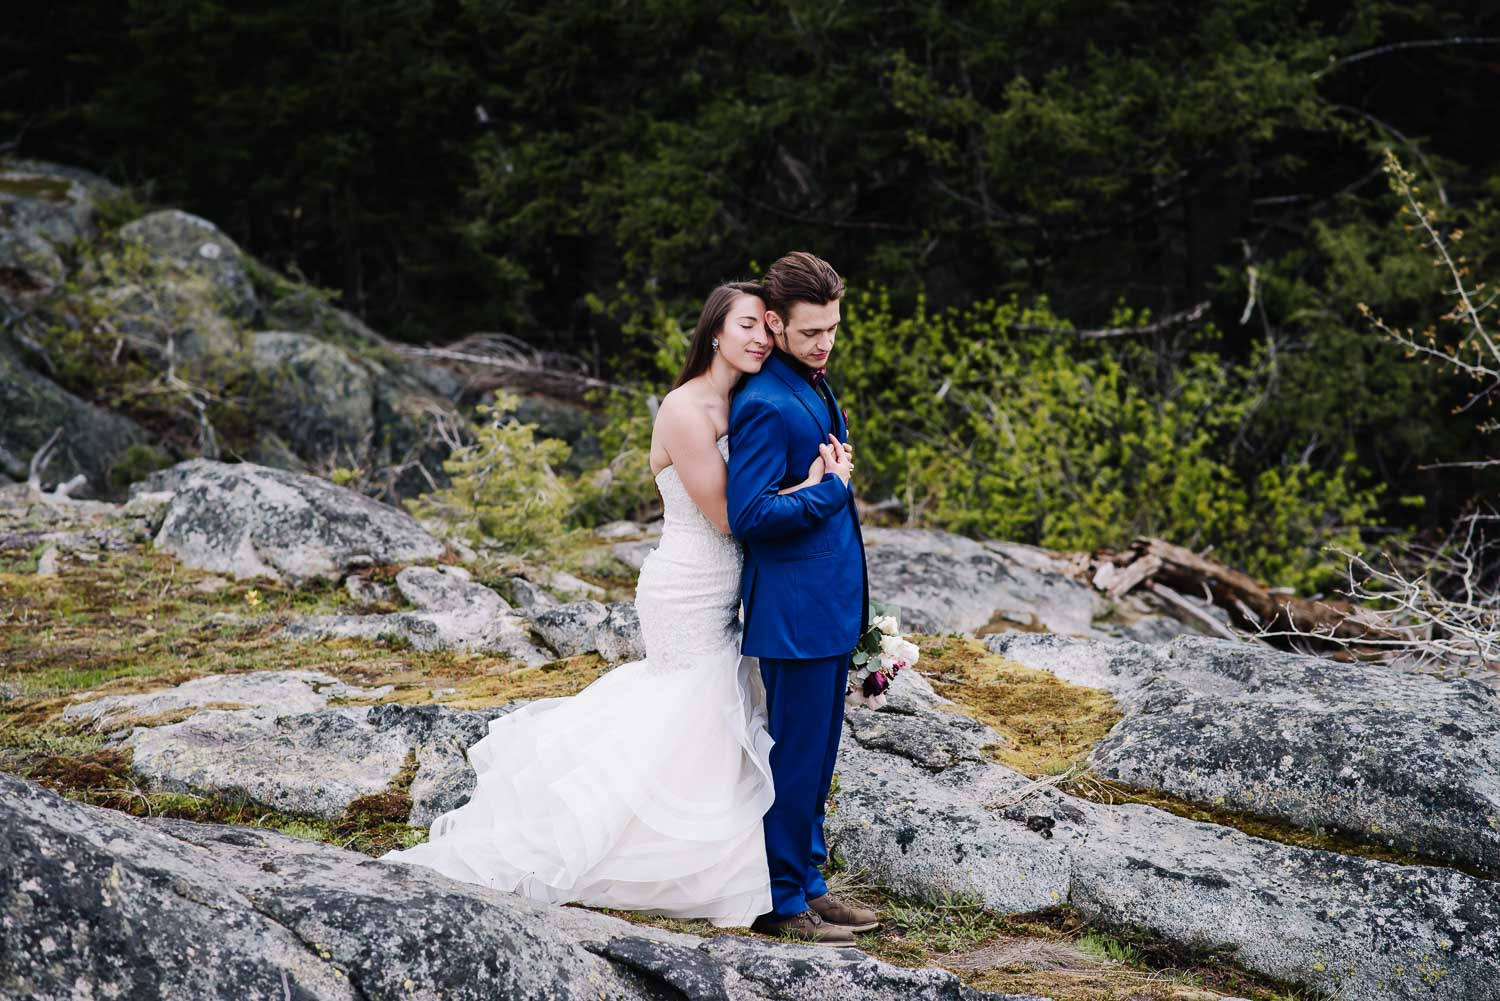 Payette Lake is an adventurous wedding venue in McCall Idaho. Couple standing on rock hugging with pine trees behind them.